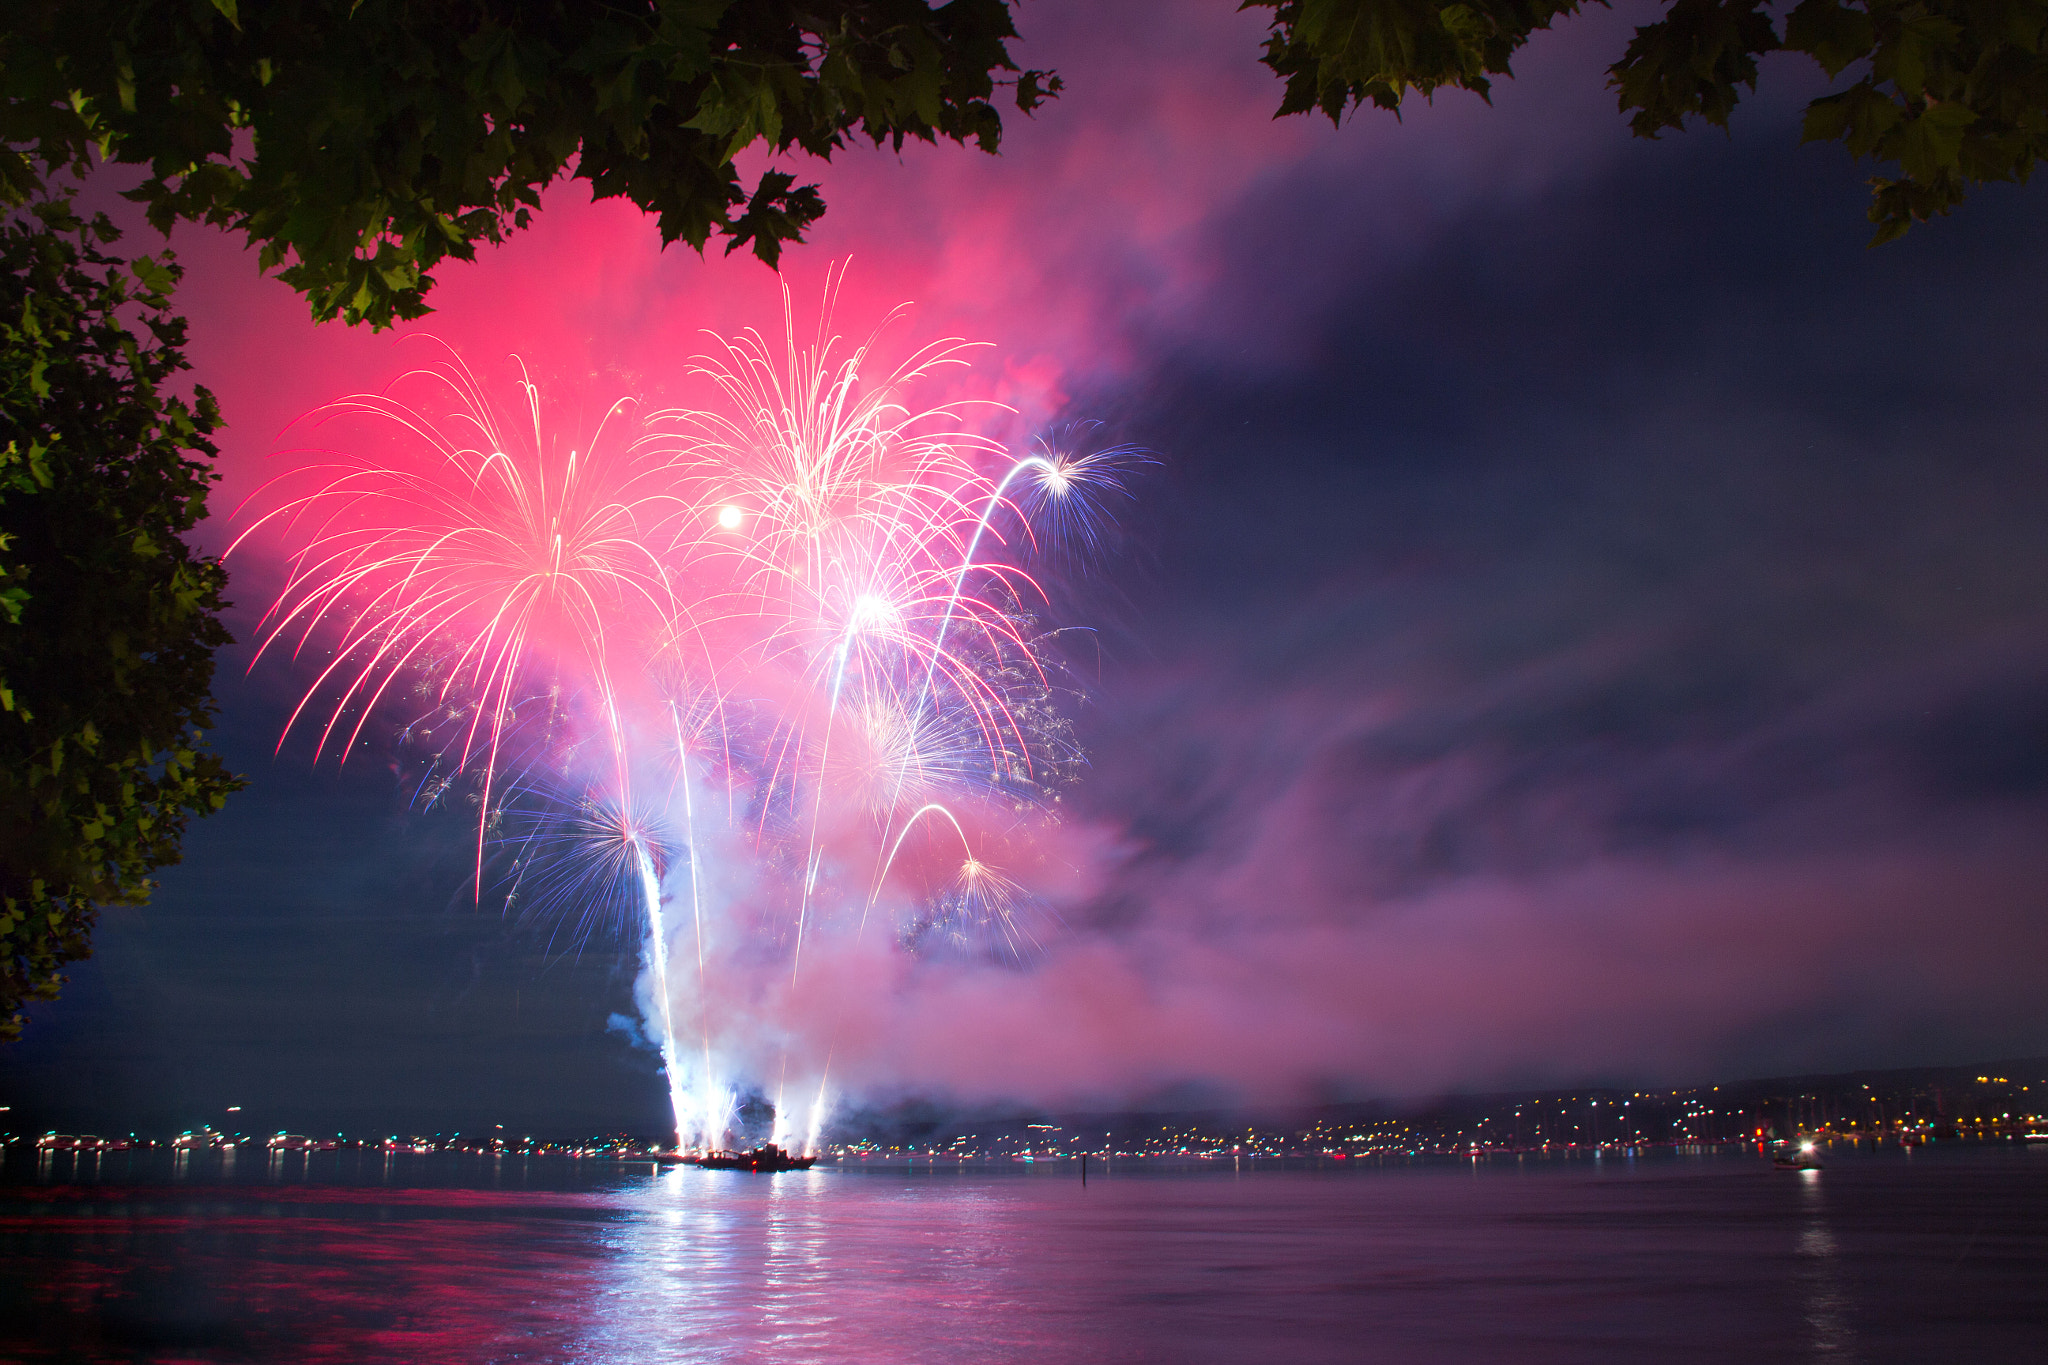 Photograph Firework @ lake of constance by Jochen Auer on 500px